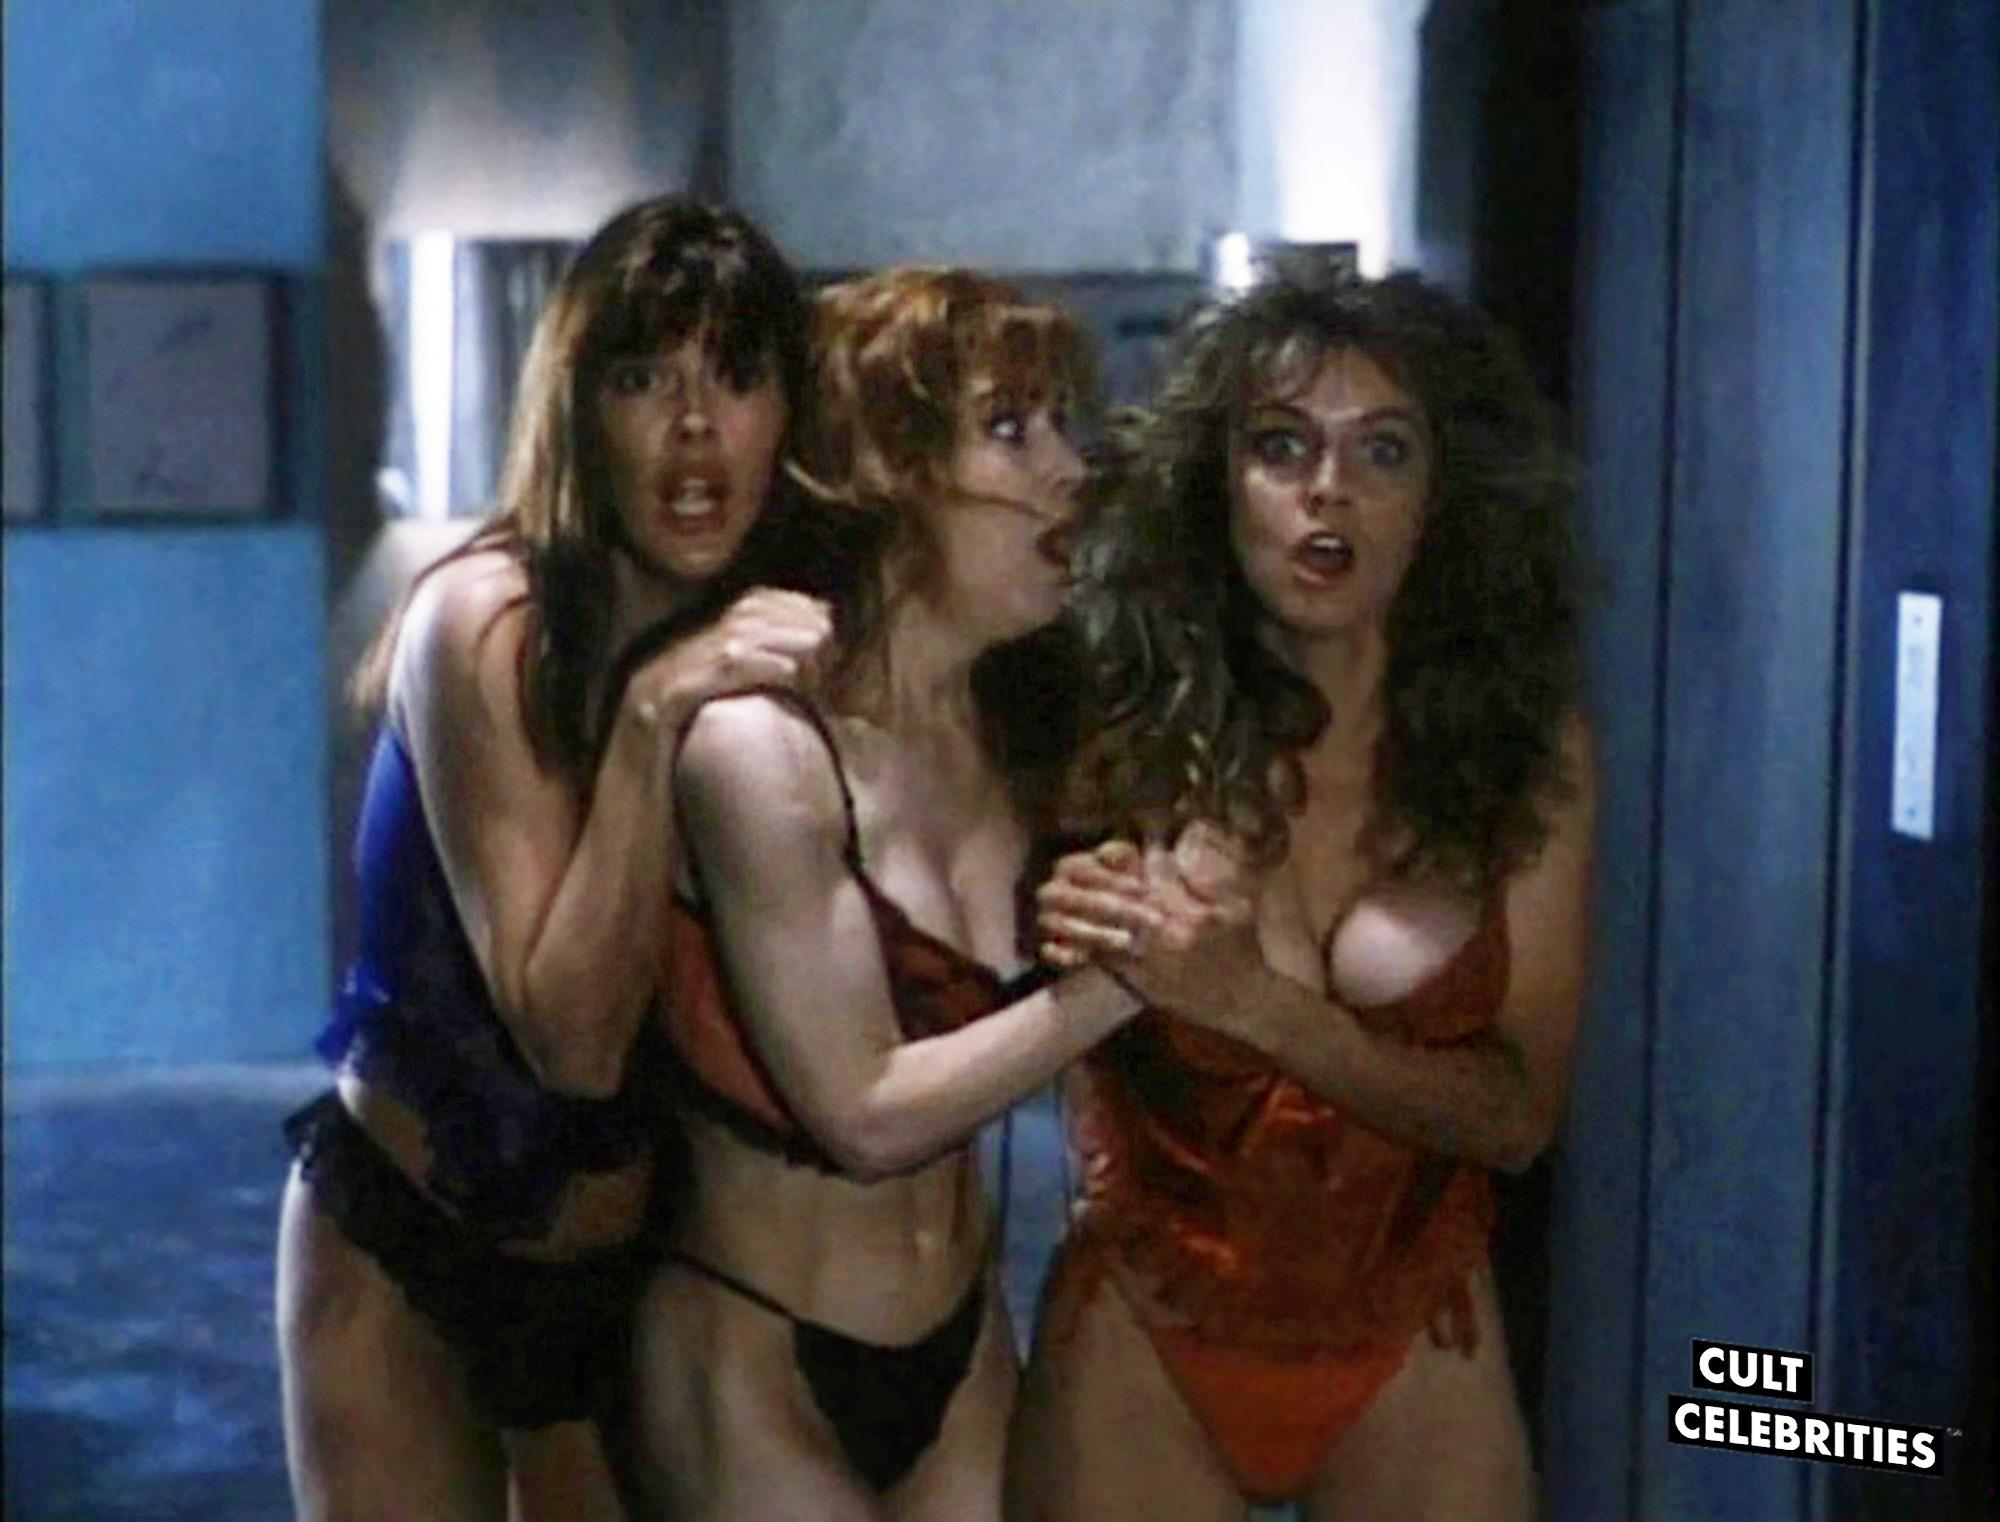 Gail Thackray, Deborah Dutch and Karen Mayo-Chandler in Hard to Die (1990)